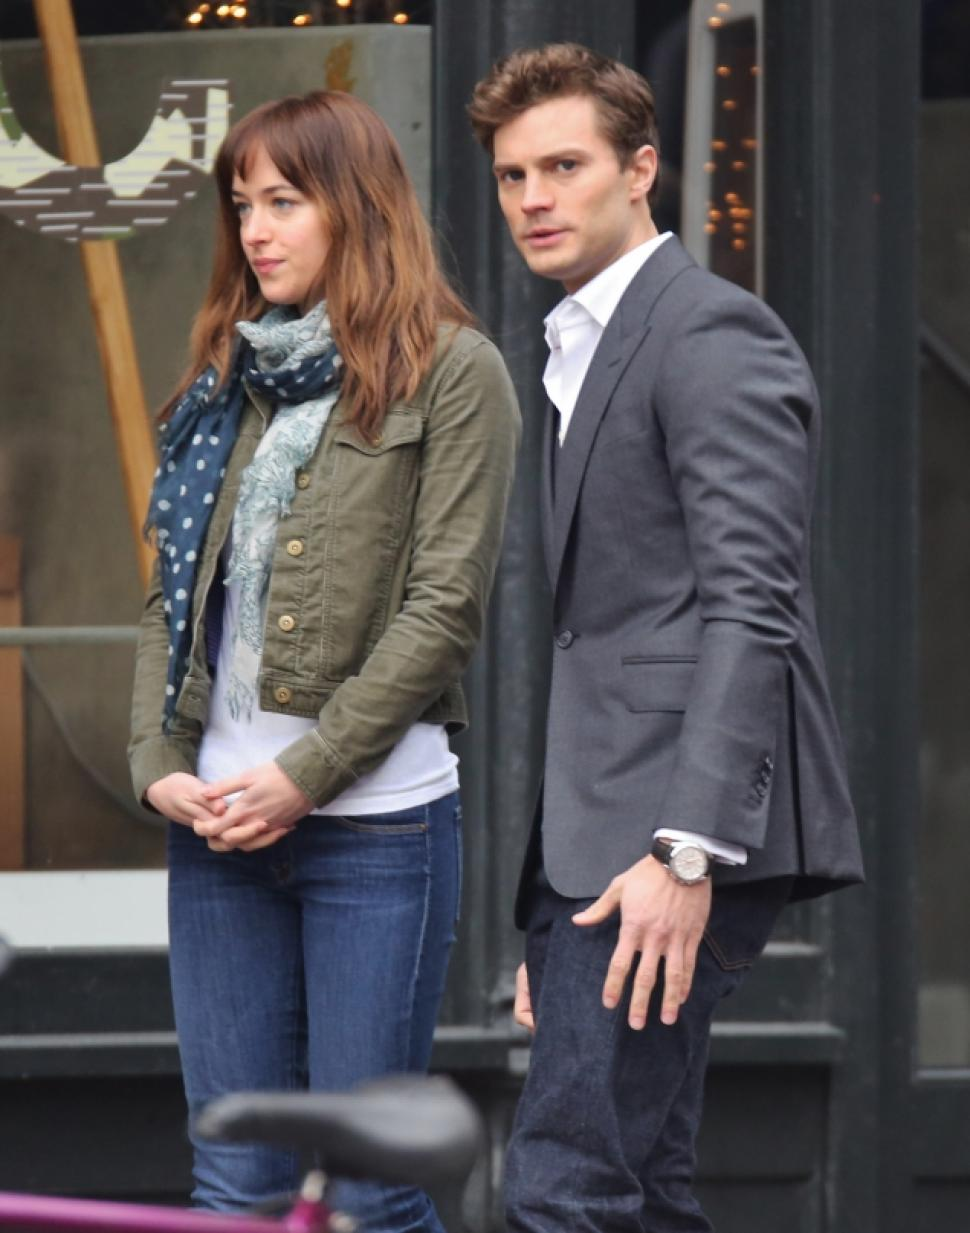 Dakota Johnson and Jamie Dornan on the set of '50 Shades of Grey'